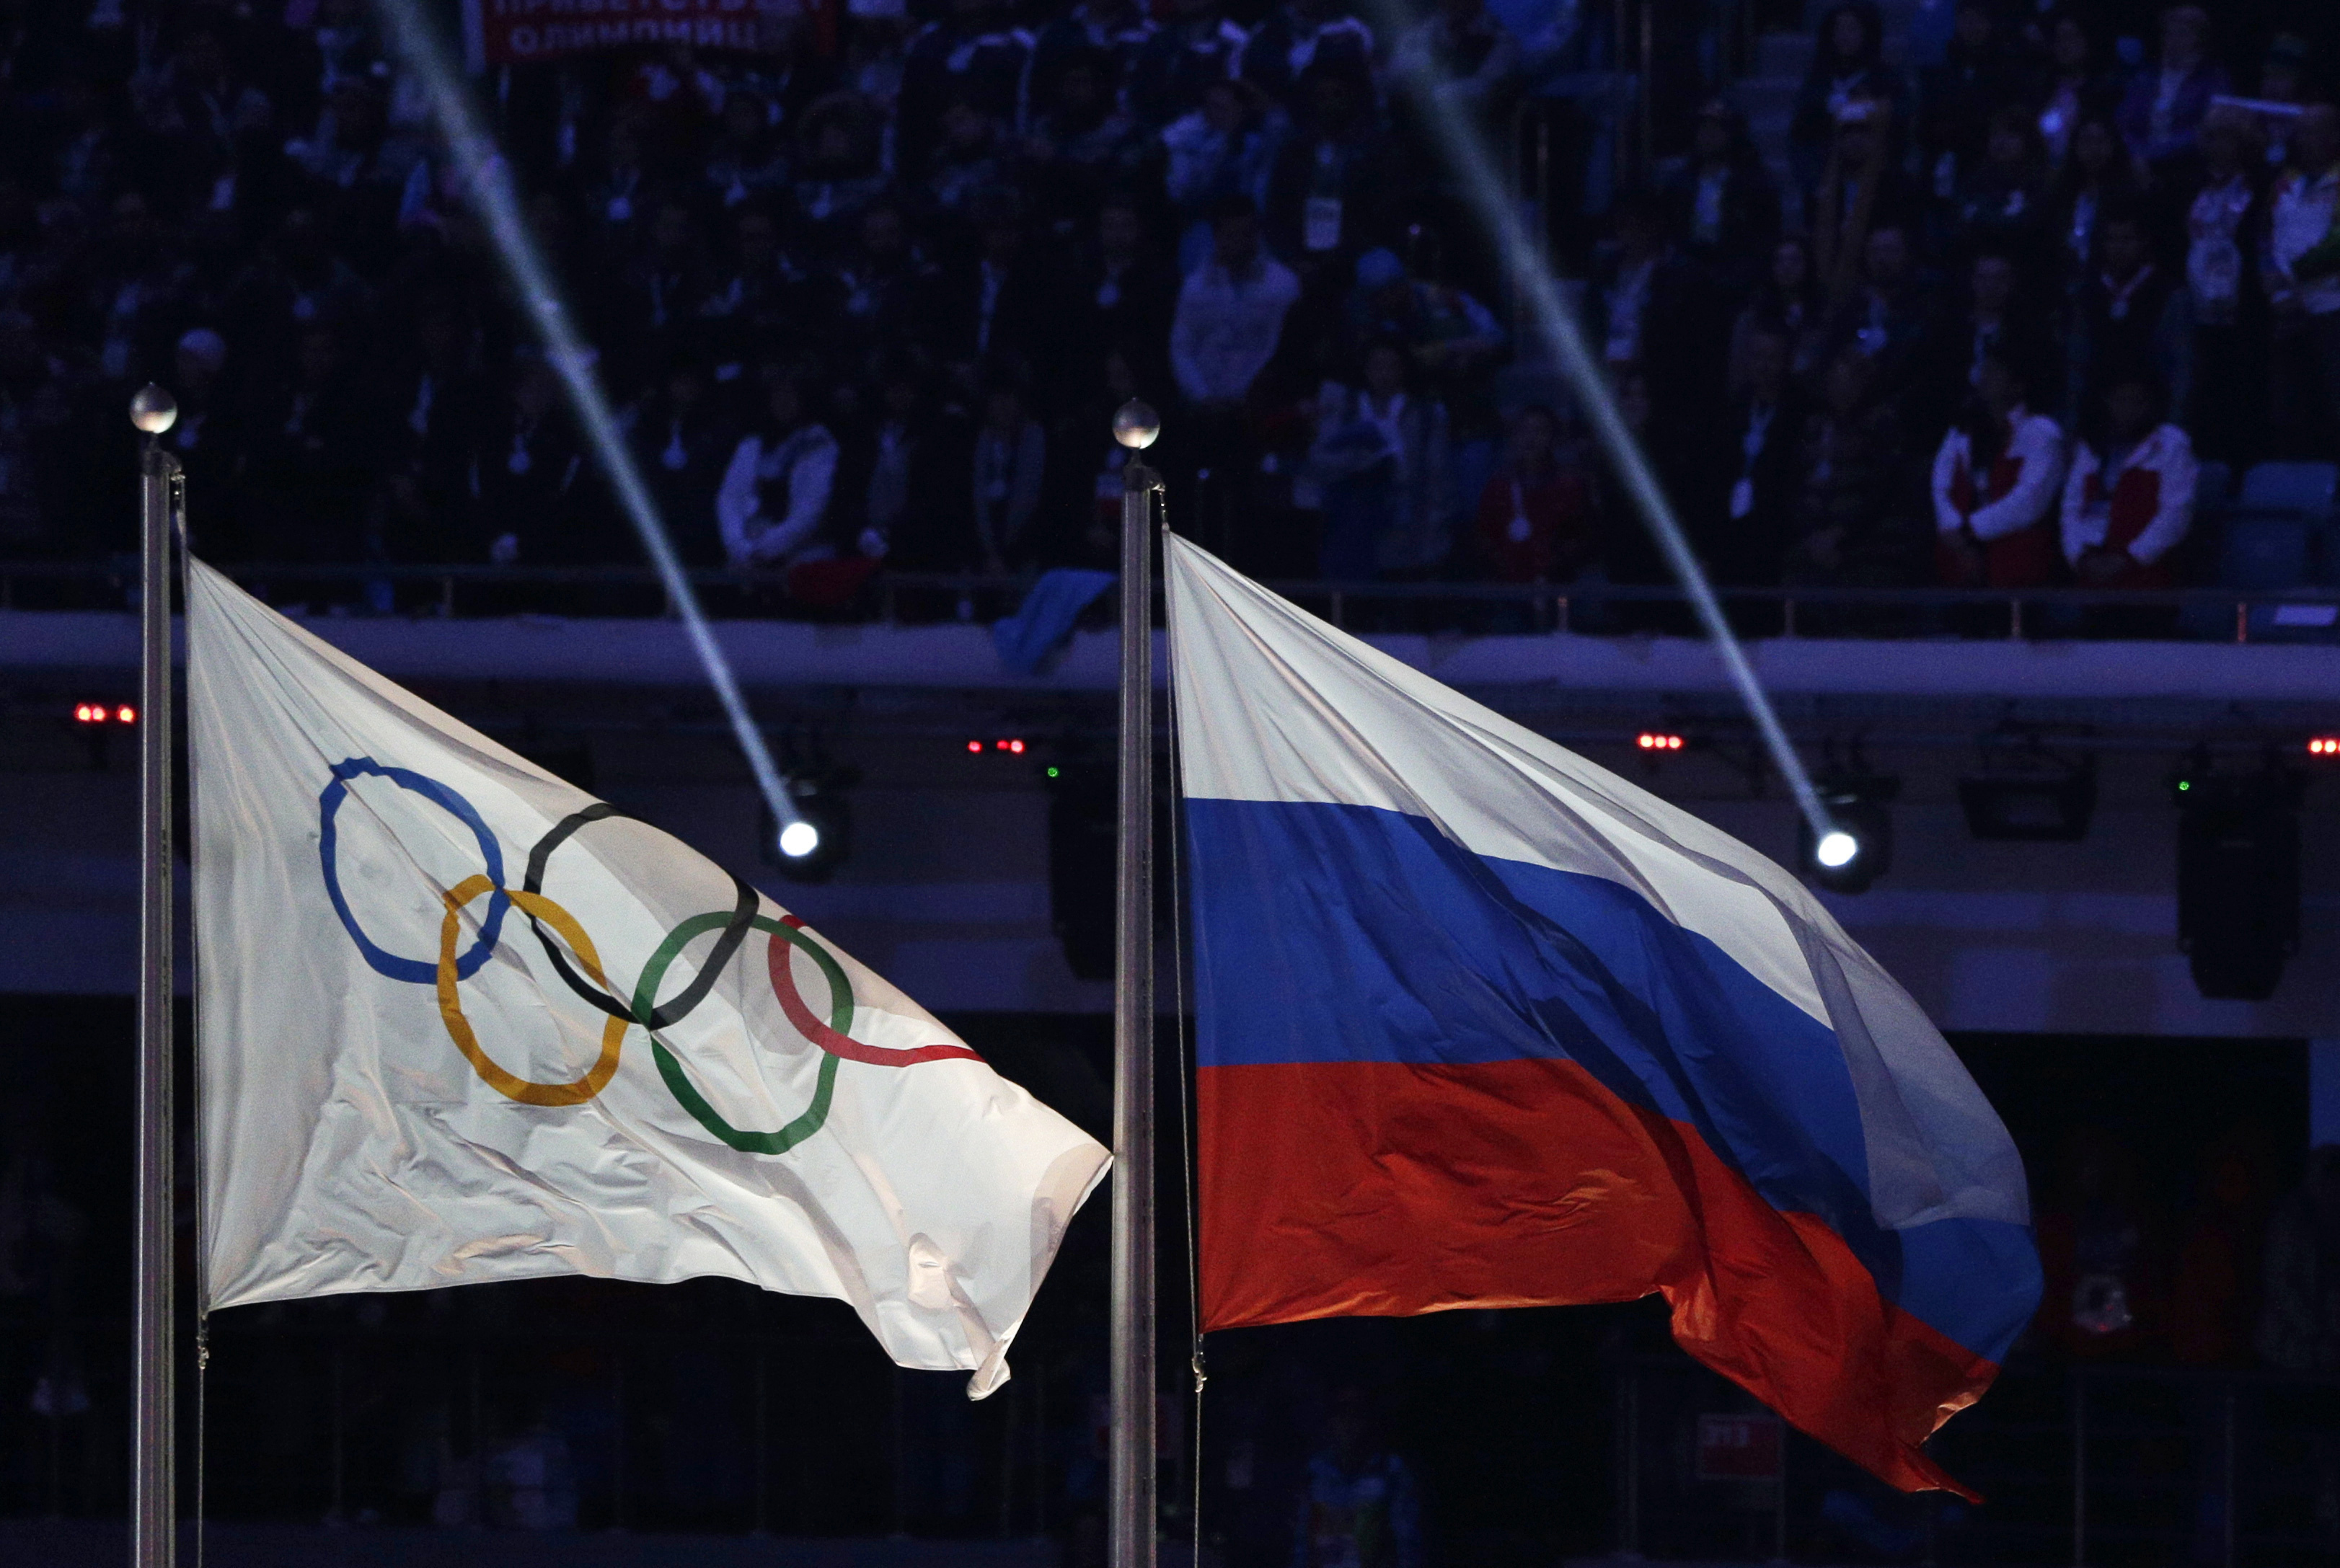 The World Anti-Doping Agency banned Russia from the Olympics and other major sporting events for four years, though many athletes will likely be allowed to compete as neutral athletes.